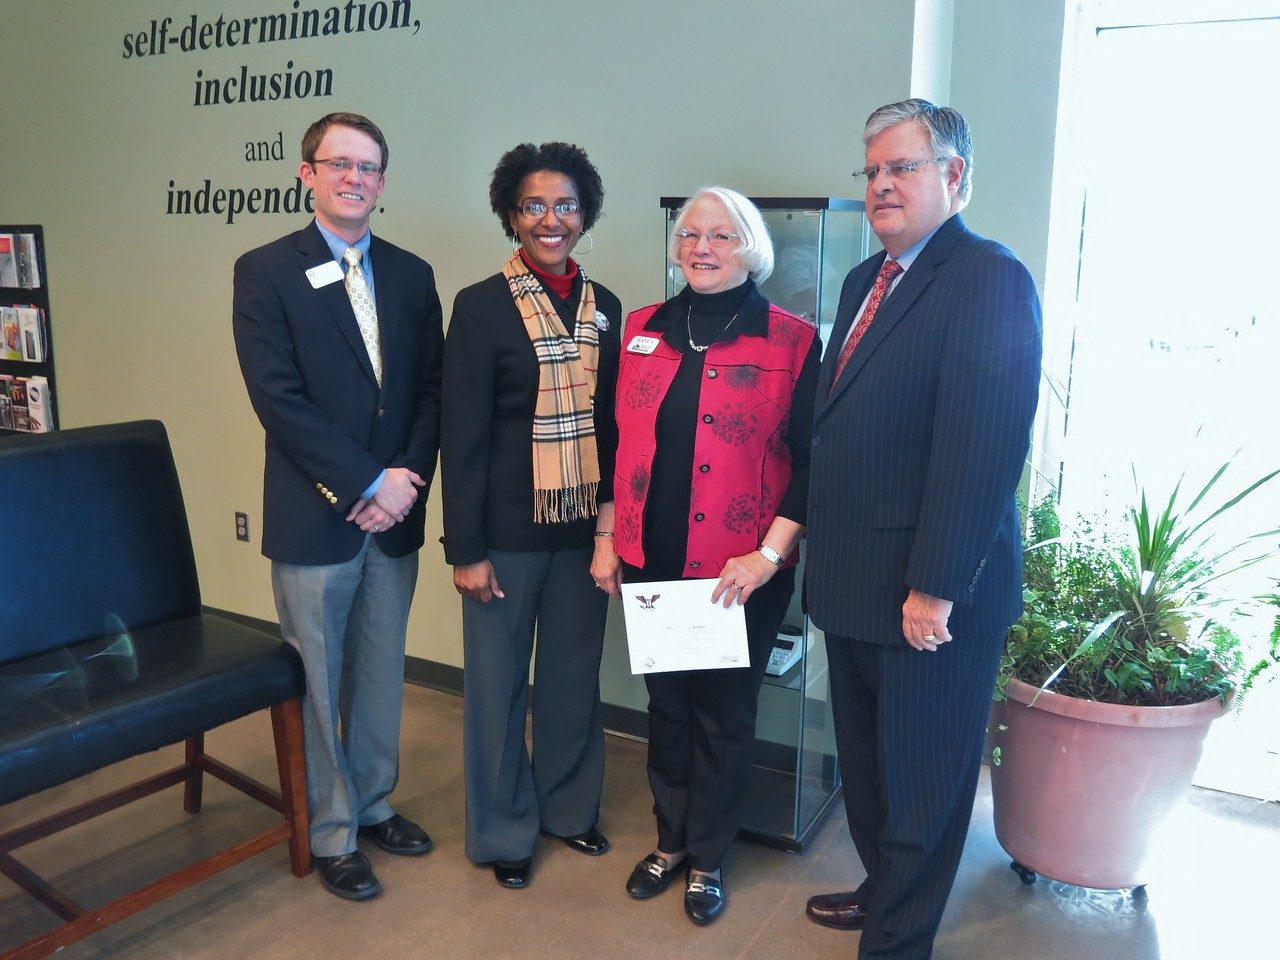 Senior Corps volunteer Nancy Good with RSVP of Southwest Missouri received the Drum Major for Service award on MLK Day 2014 in recognition of her 40 years of service to the Joplin, MO community.<br /> <br /> Left to right: Rep. Billy Long staff member Jake Heisten, Joplin Mayor Melodee Colbert Keen, Nancy Good, and Missouri State Senator Ron Richards.